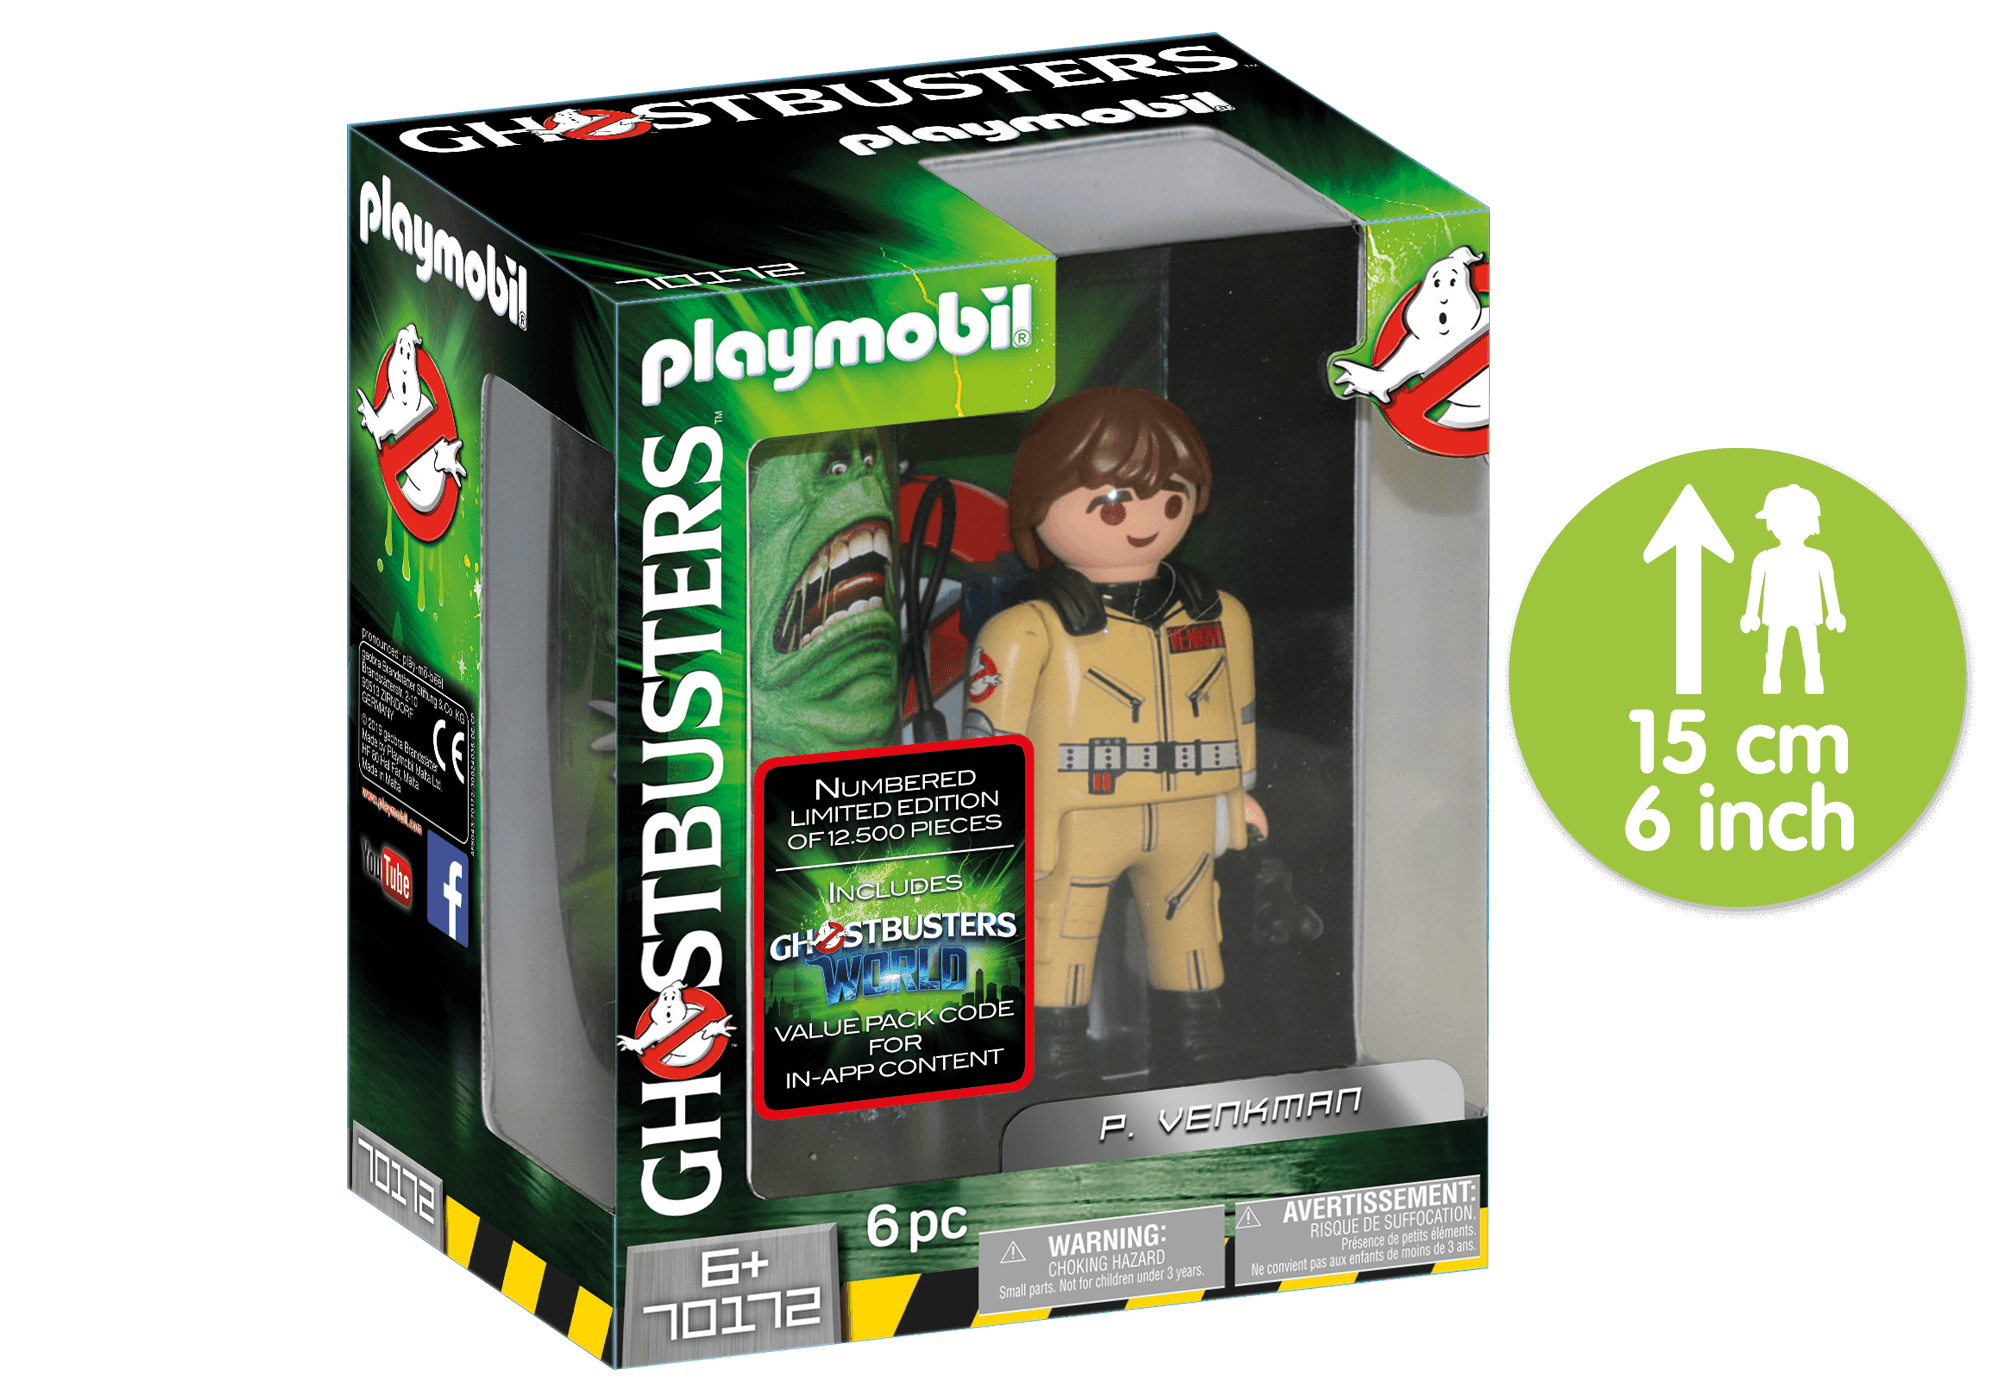 http://media.playmobil.com/i/playmobil/70172_product_detail/Ghostbusters™ Figura Coleccionable P. Venkman